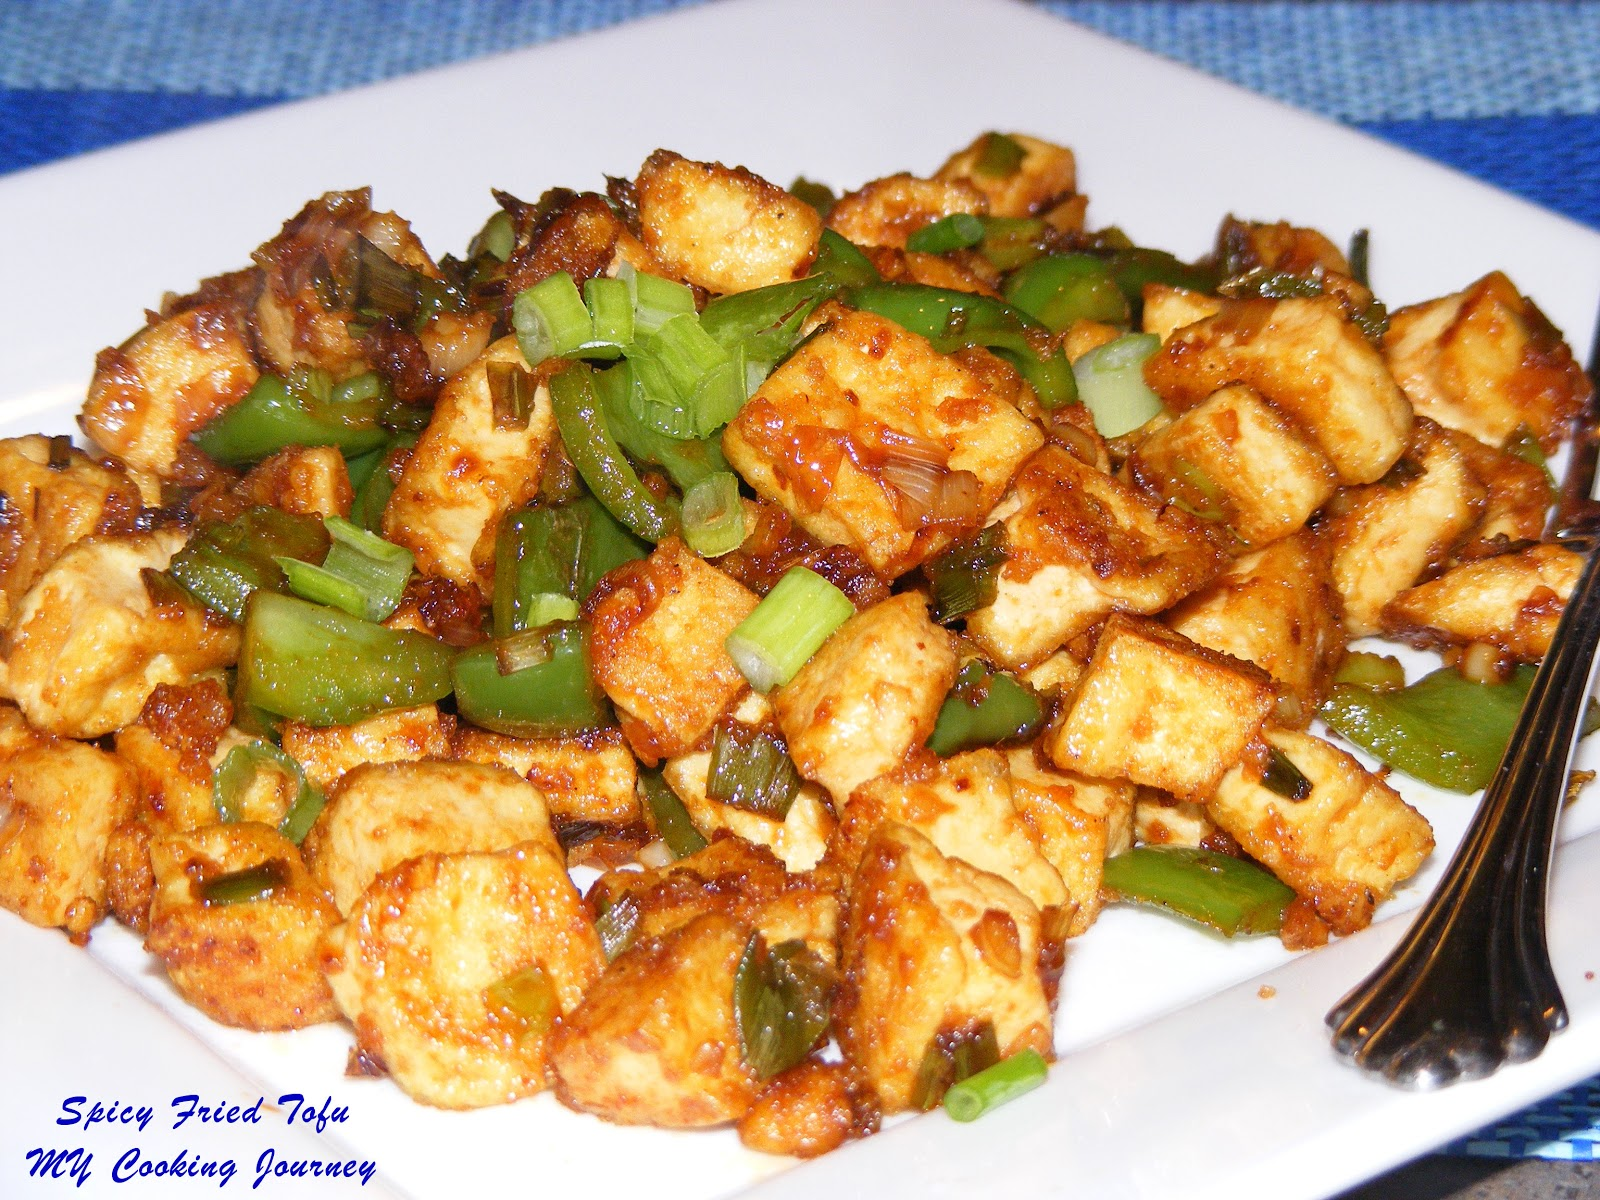 Spicy fried tofu - My Cooking Journey ...